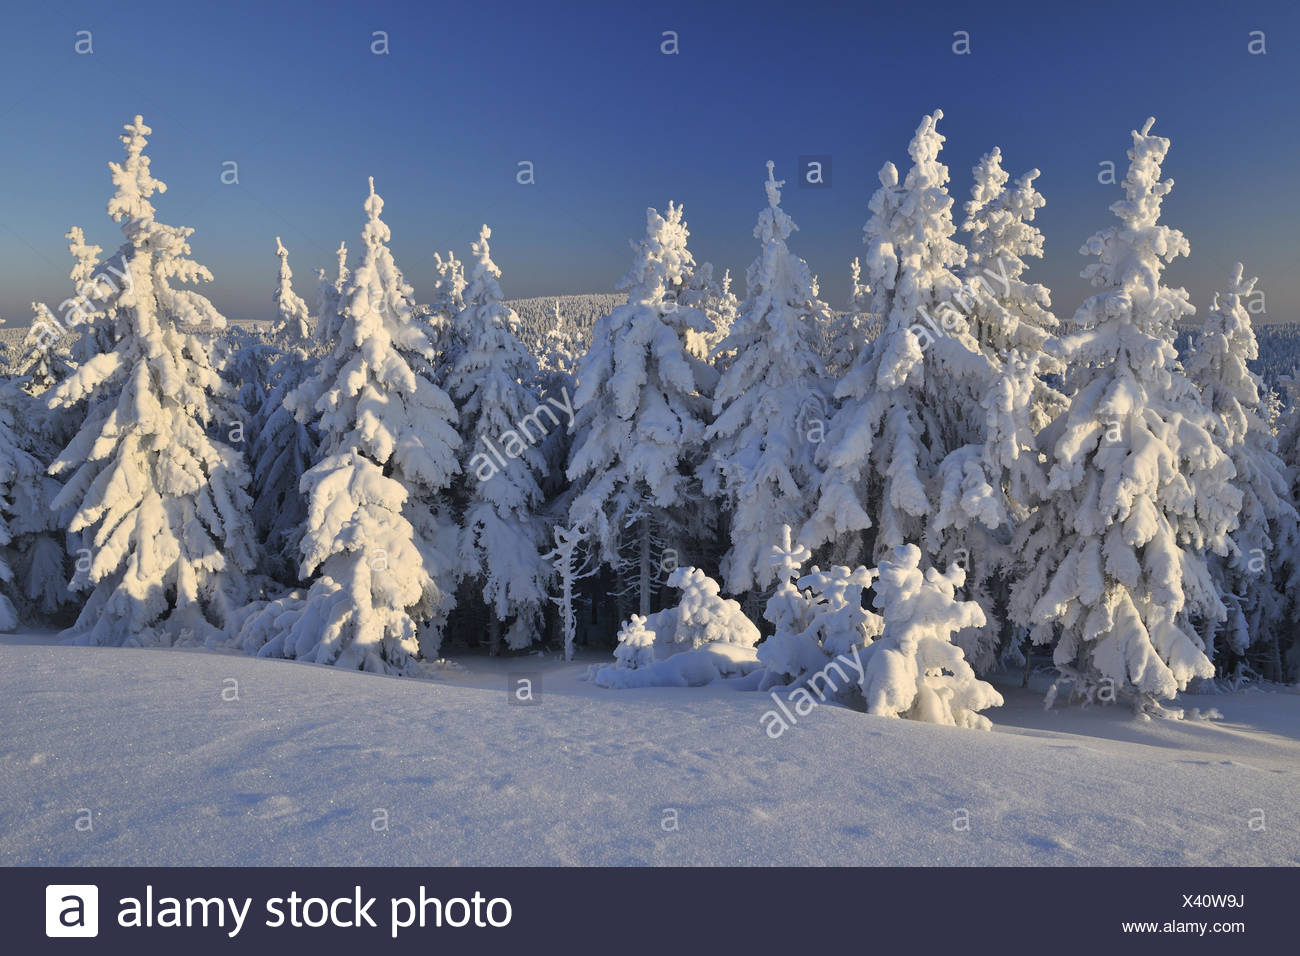 Snowy conifers, winters, snow head, mountain Gehl, Thuringia, Germany, - Stock Image